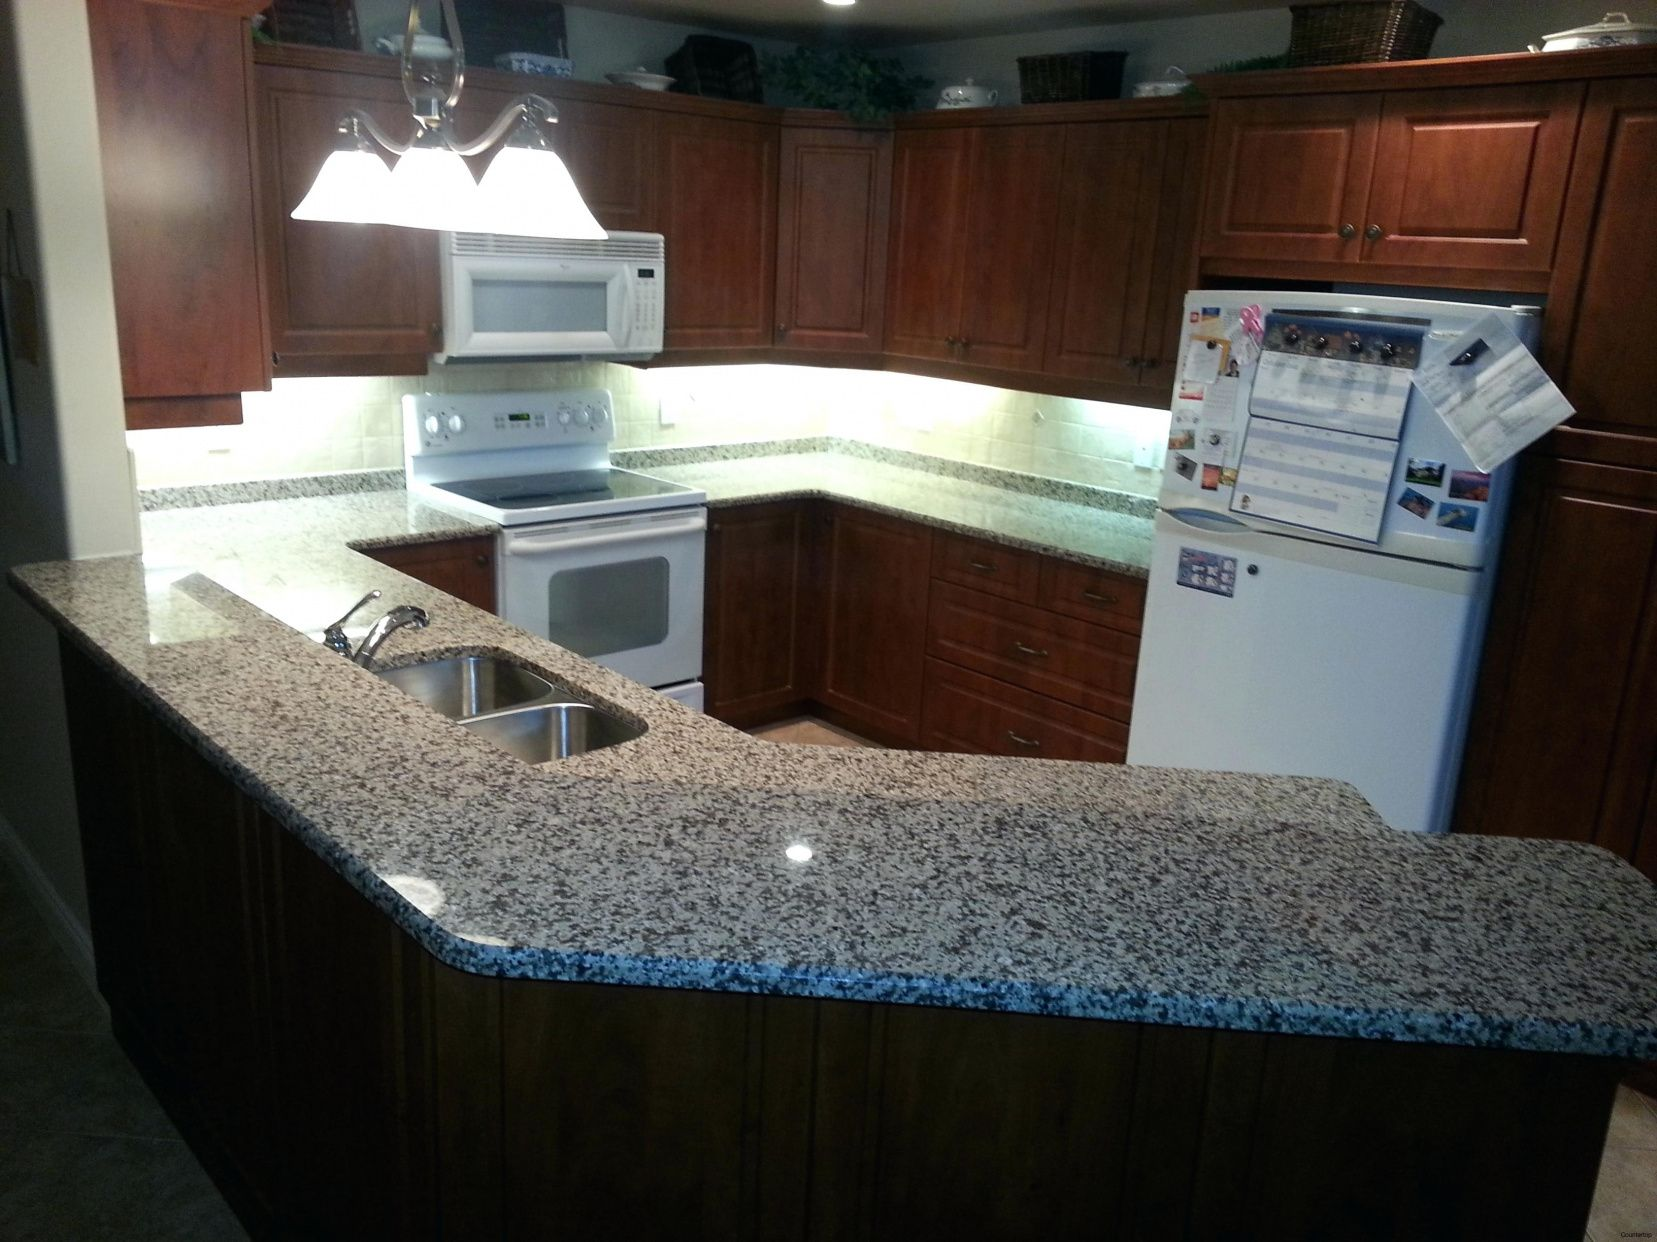 2018 Granite Countertops Toms River Nj Remodeling Ideas For Kitchens Check More At Http